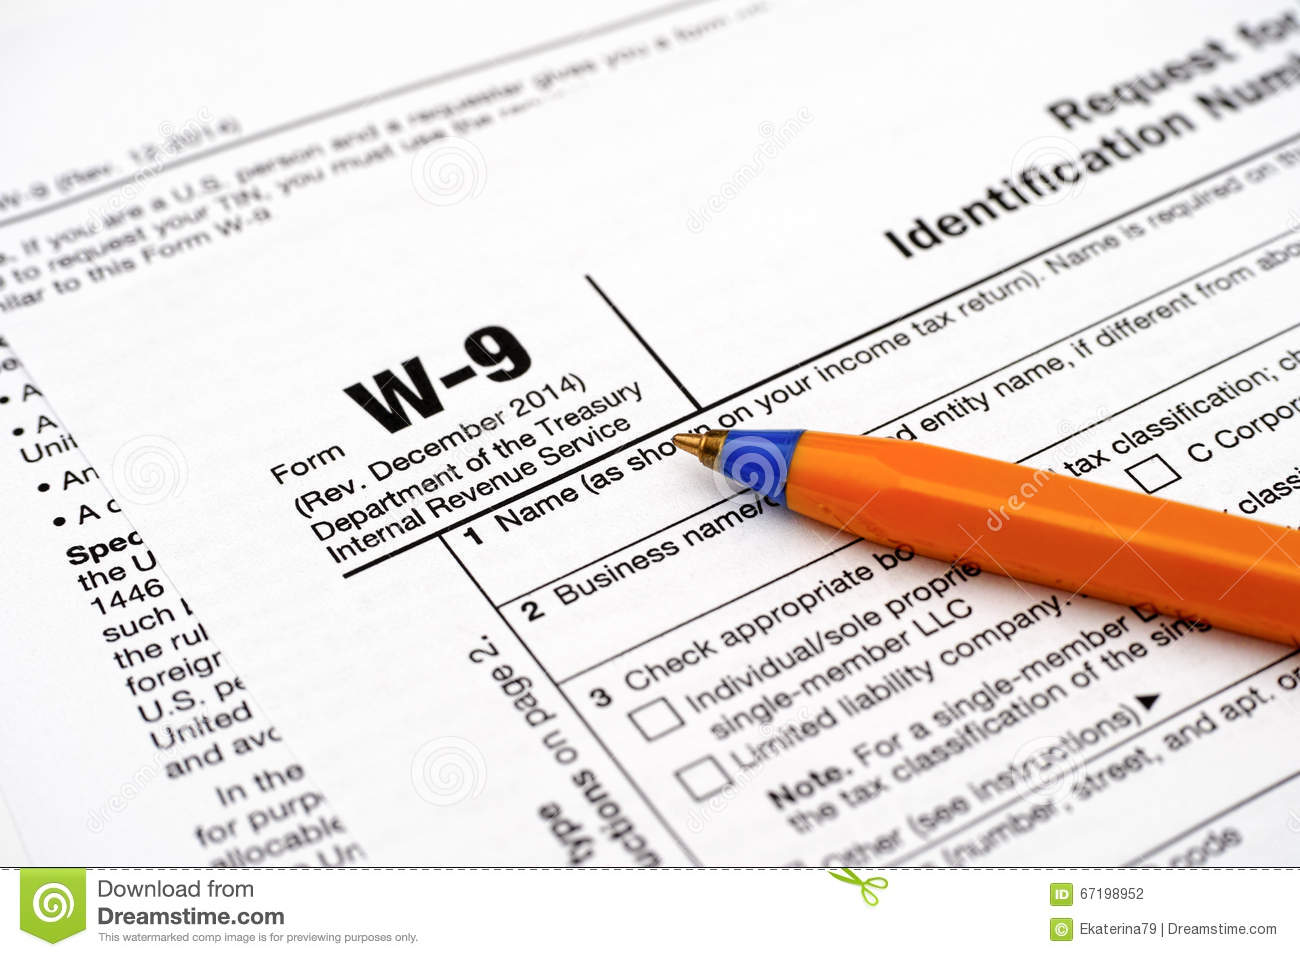 Form W 9 With Ballpoint Pen Stock Photo Image Of Working Taxpayer